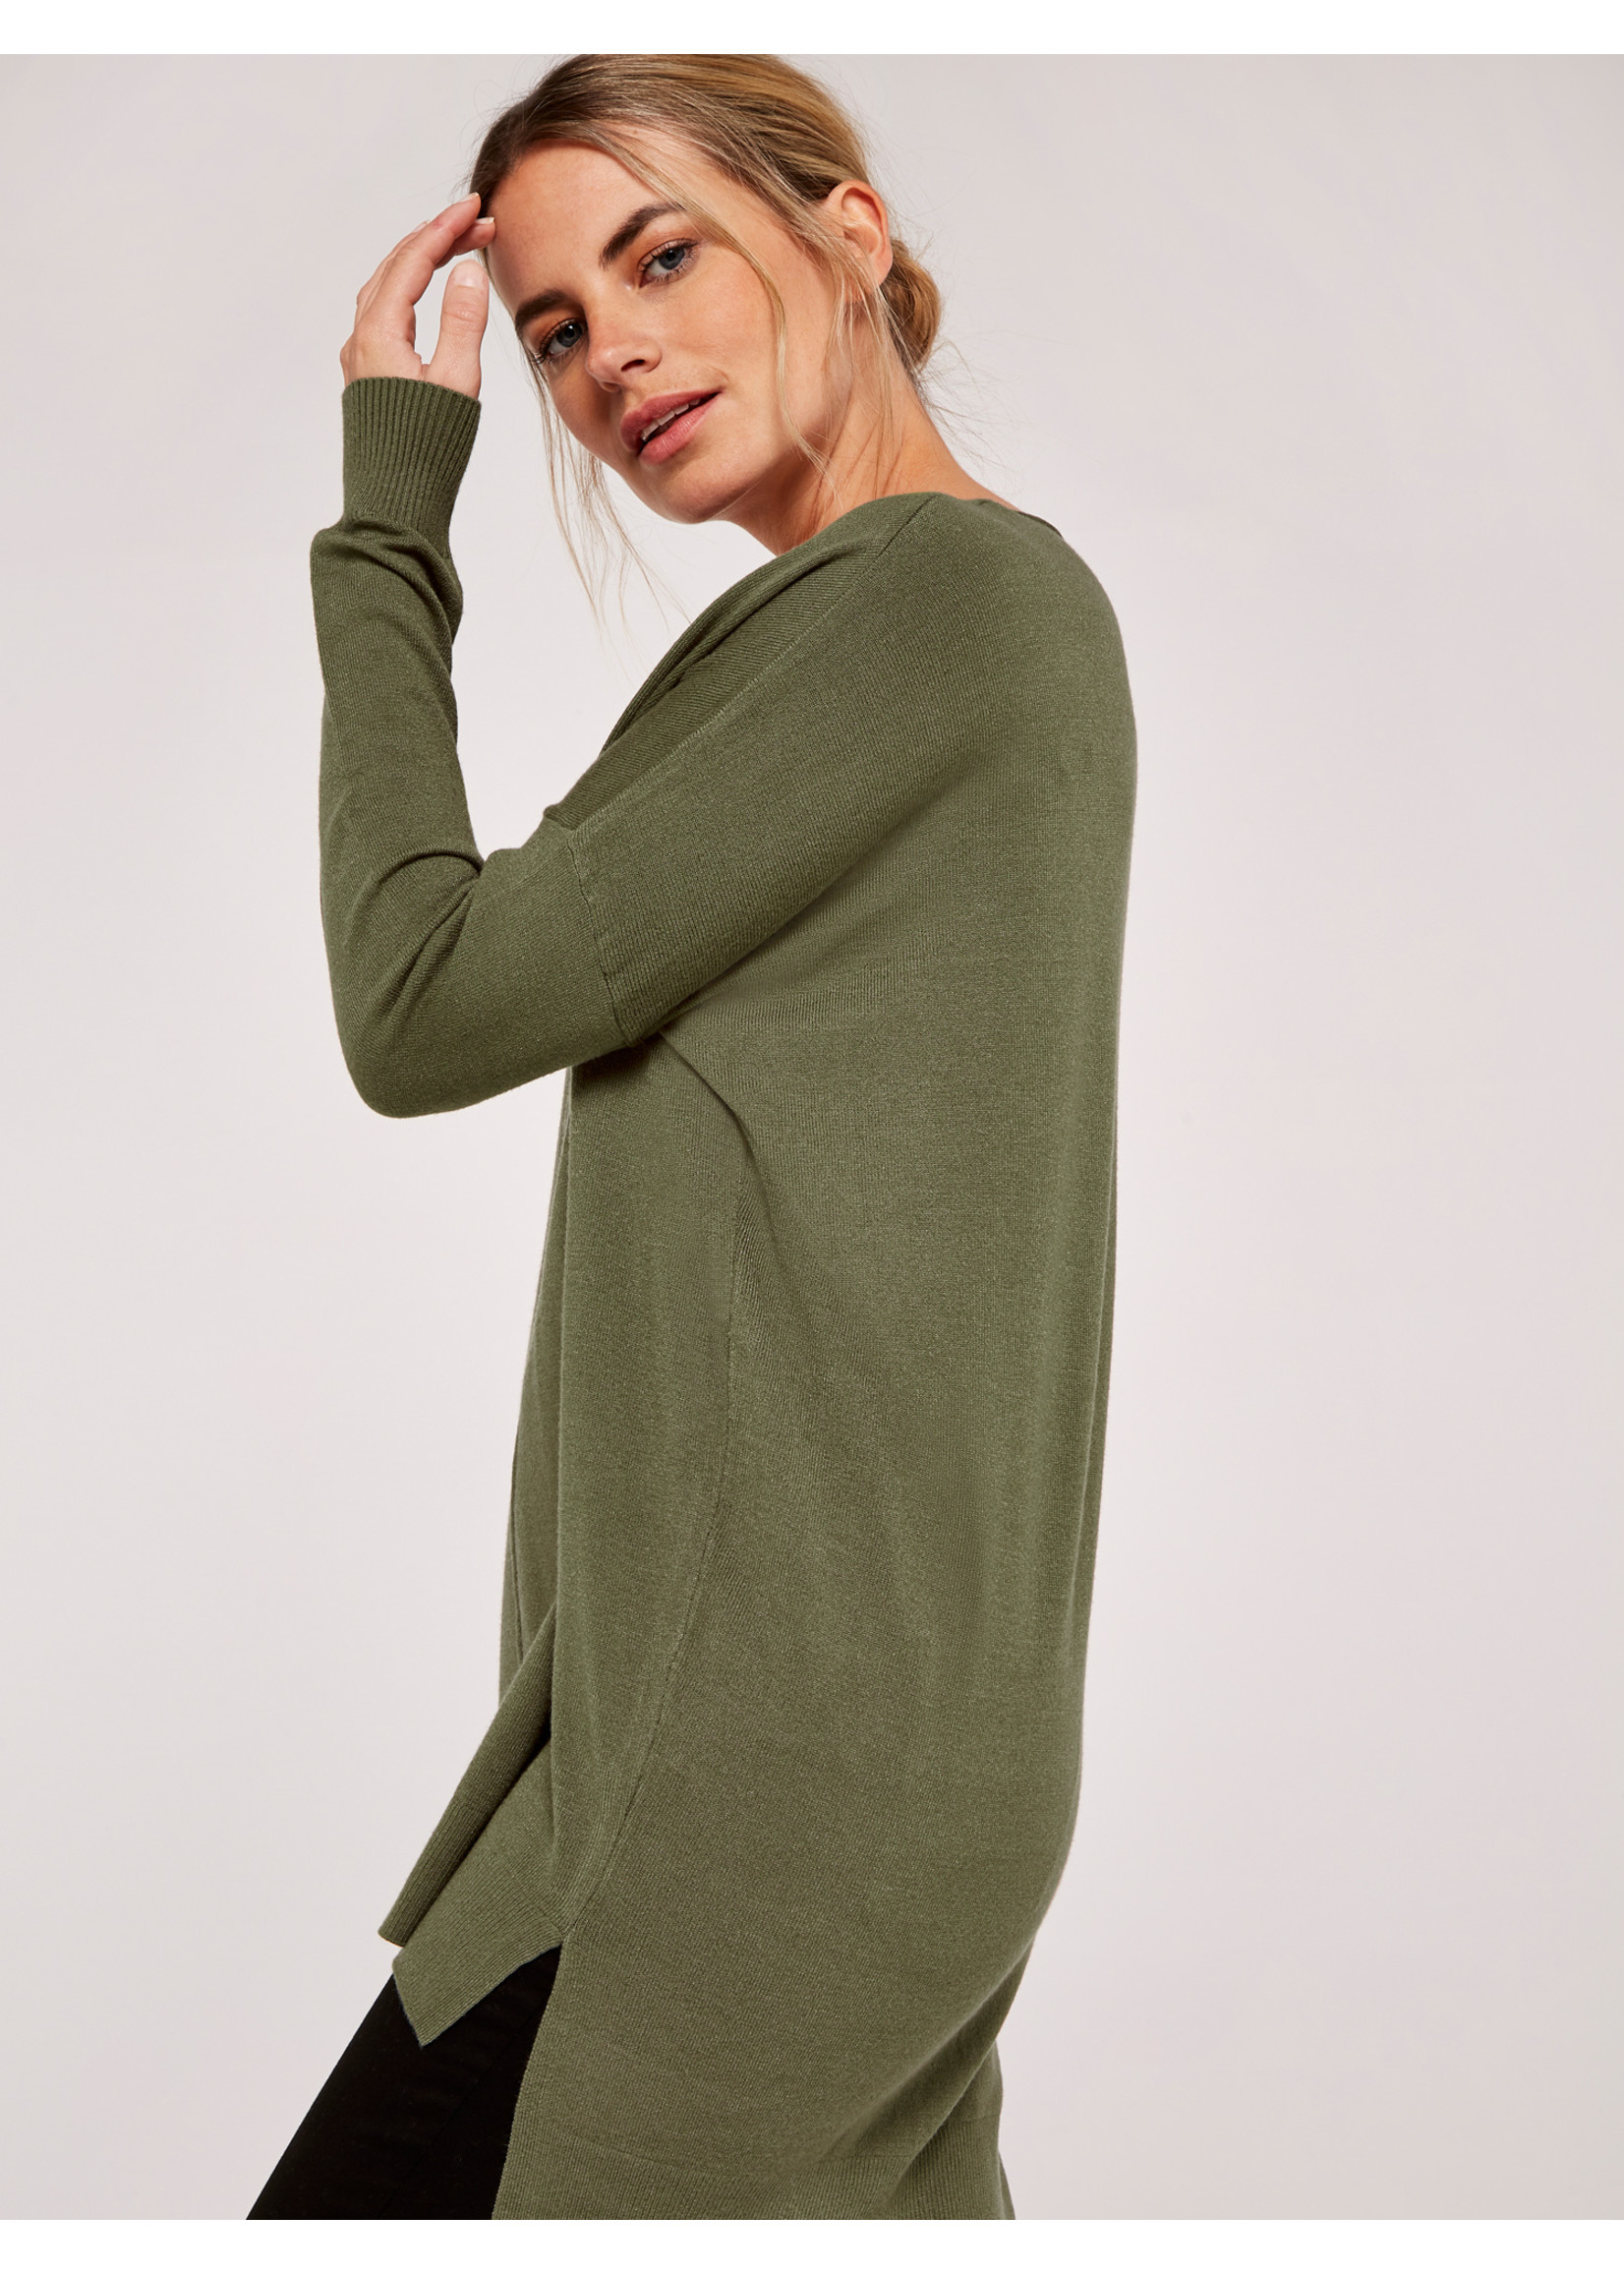 Apricot Soft Touch V-Neck Sweater